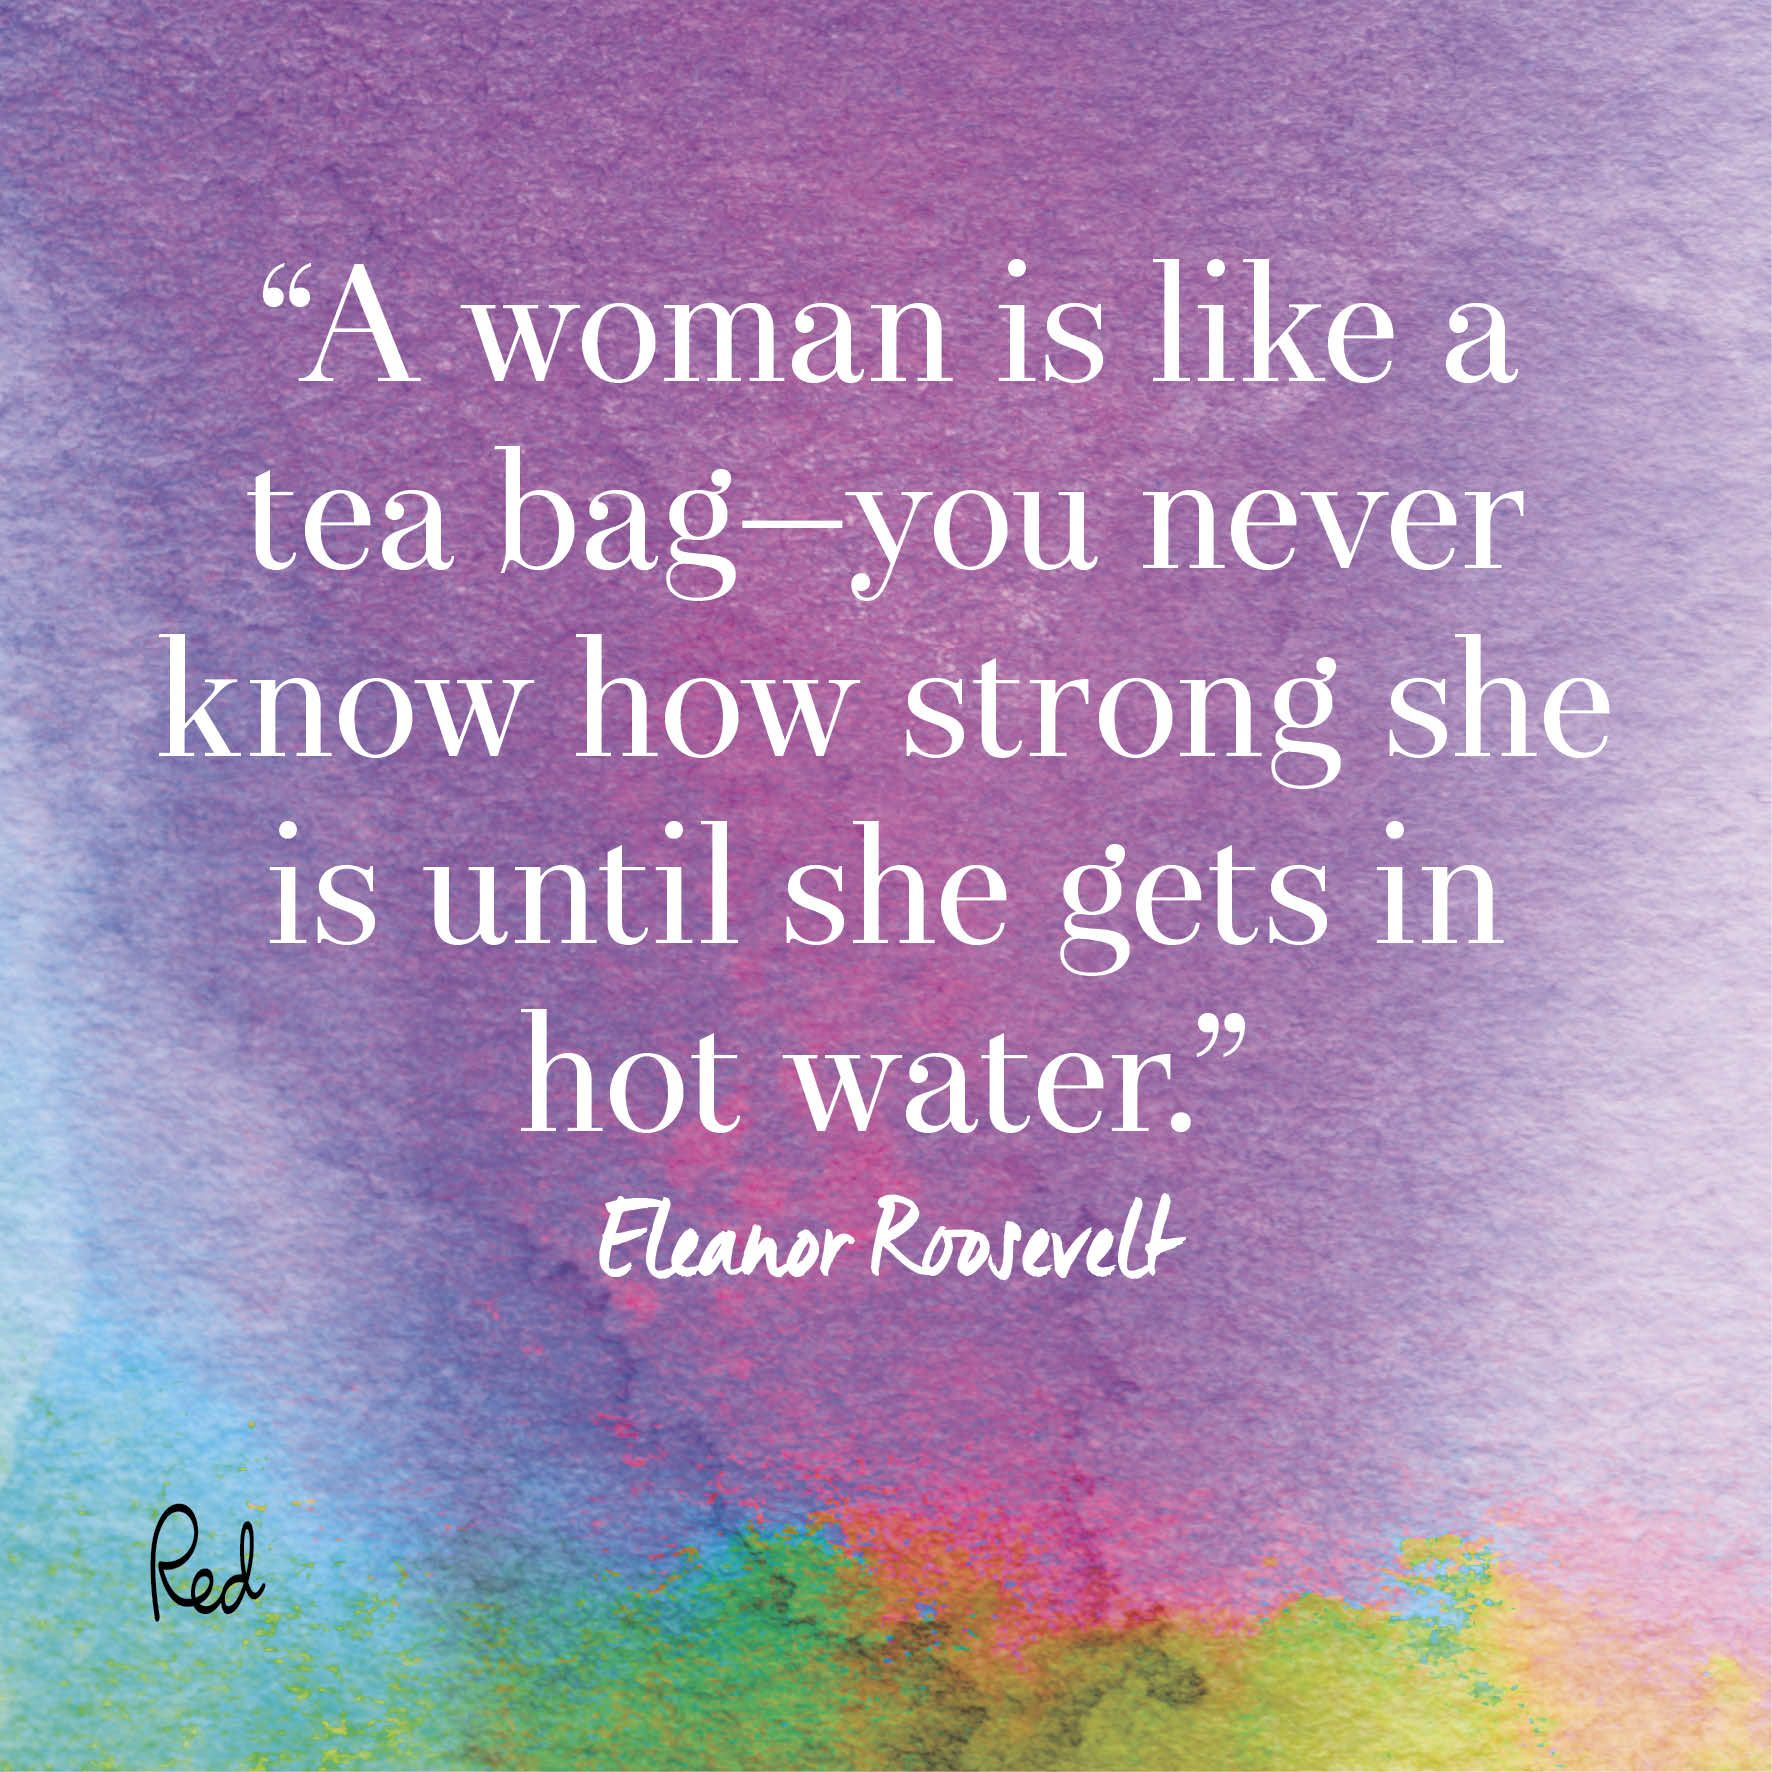 Women's Day Inspirational Quotes Pinterest thumbnail